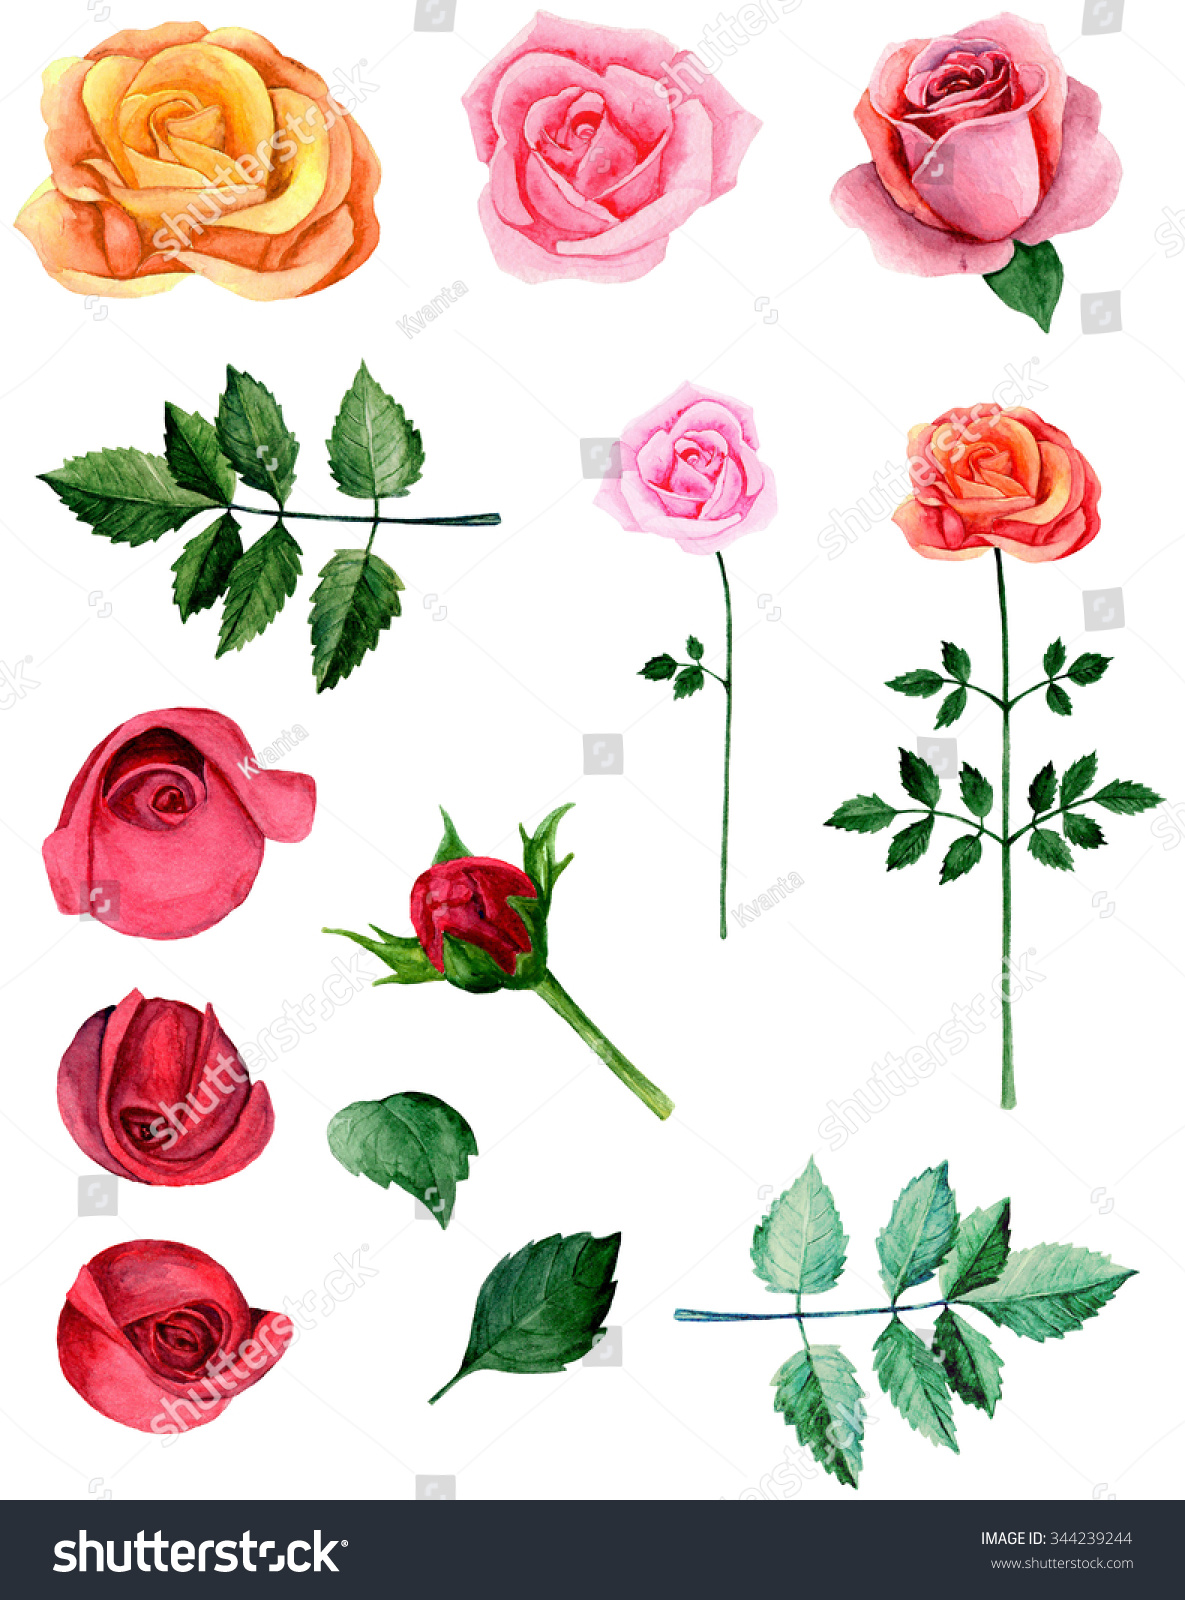 Watercolor Red Roses Clipart Pink Flowers Stock Illustration